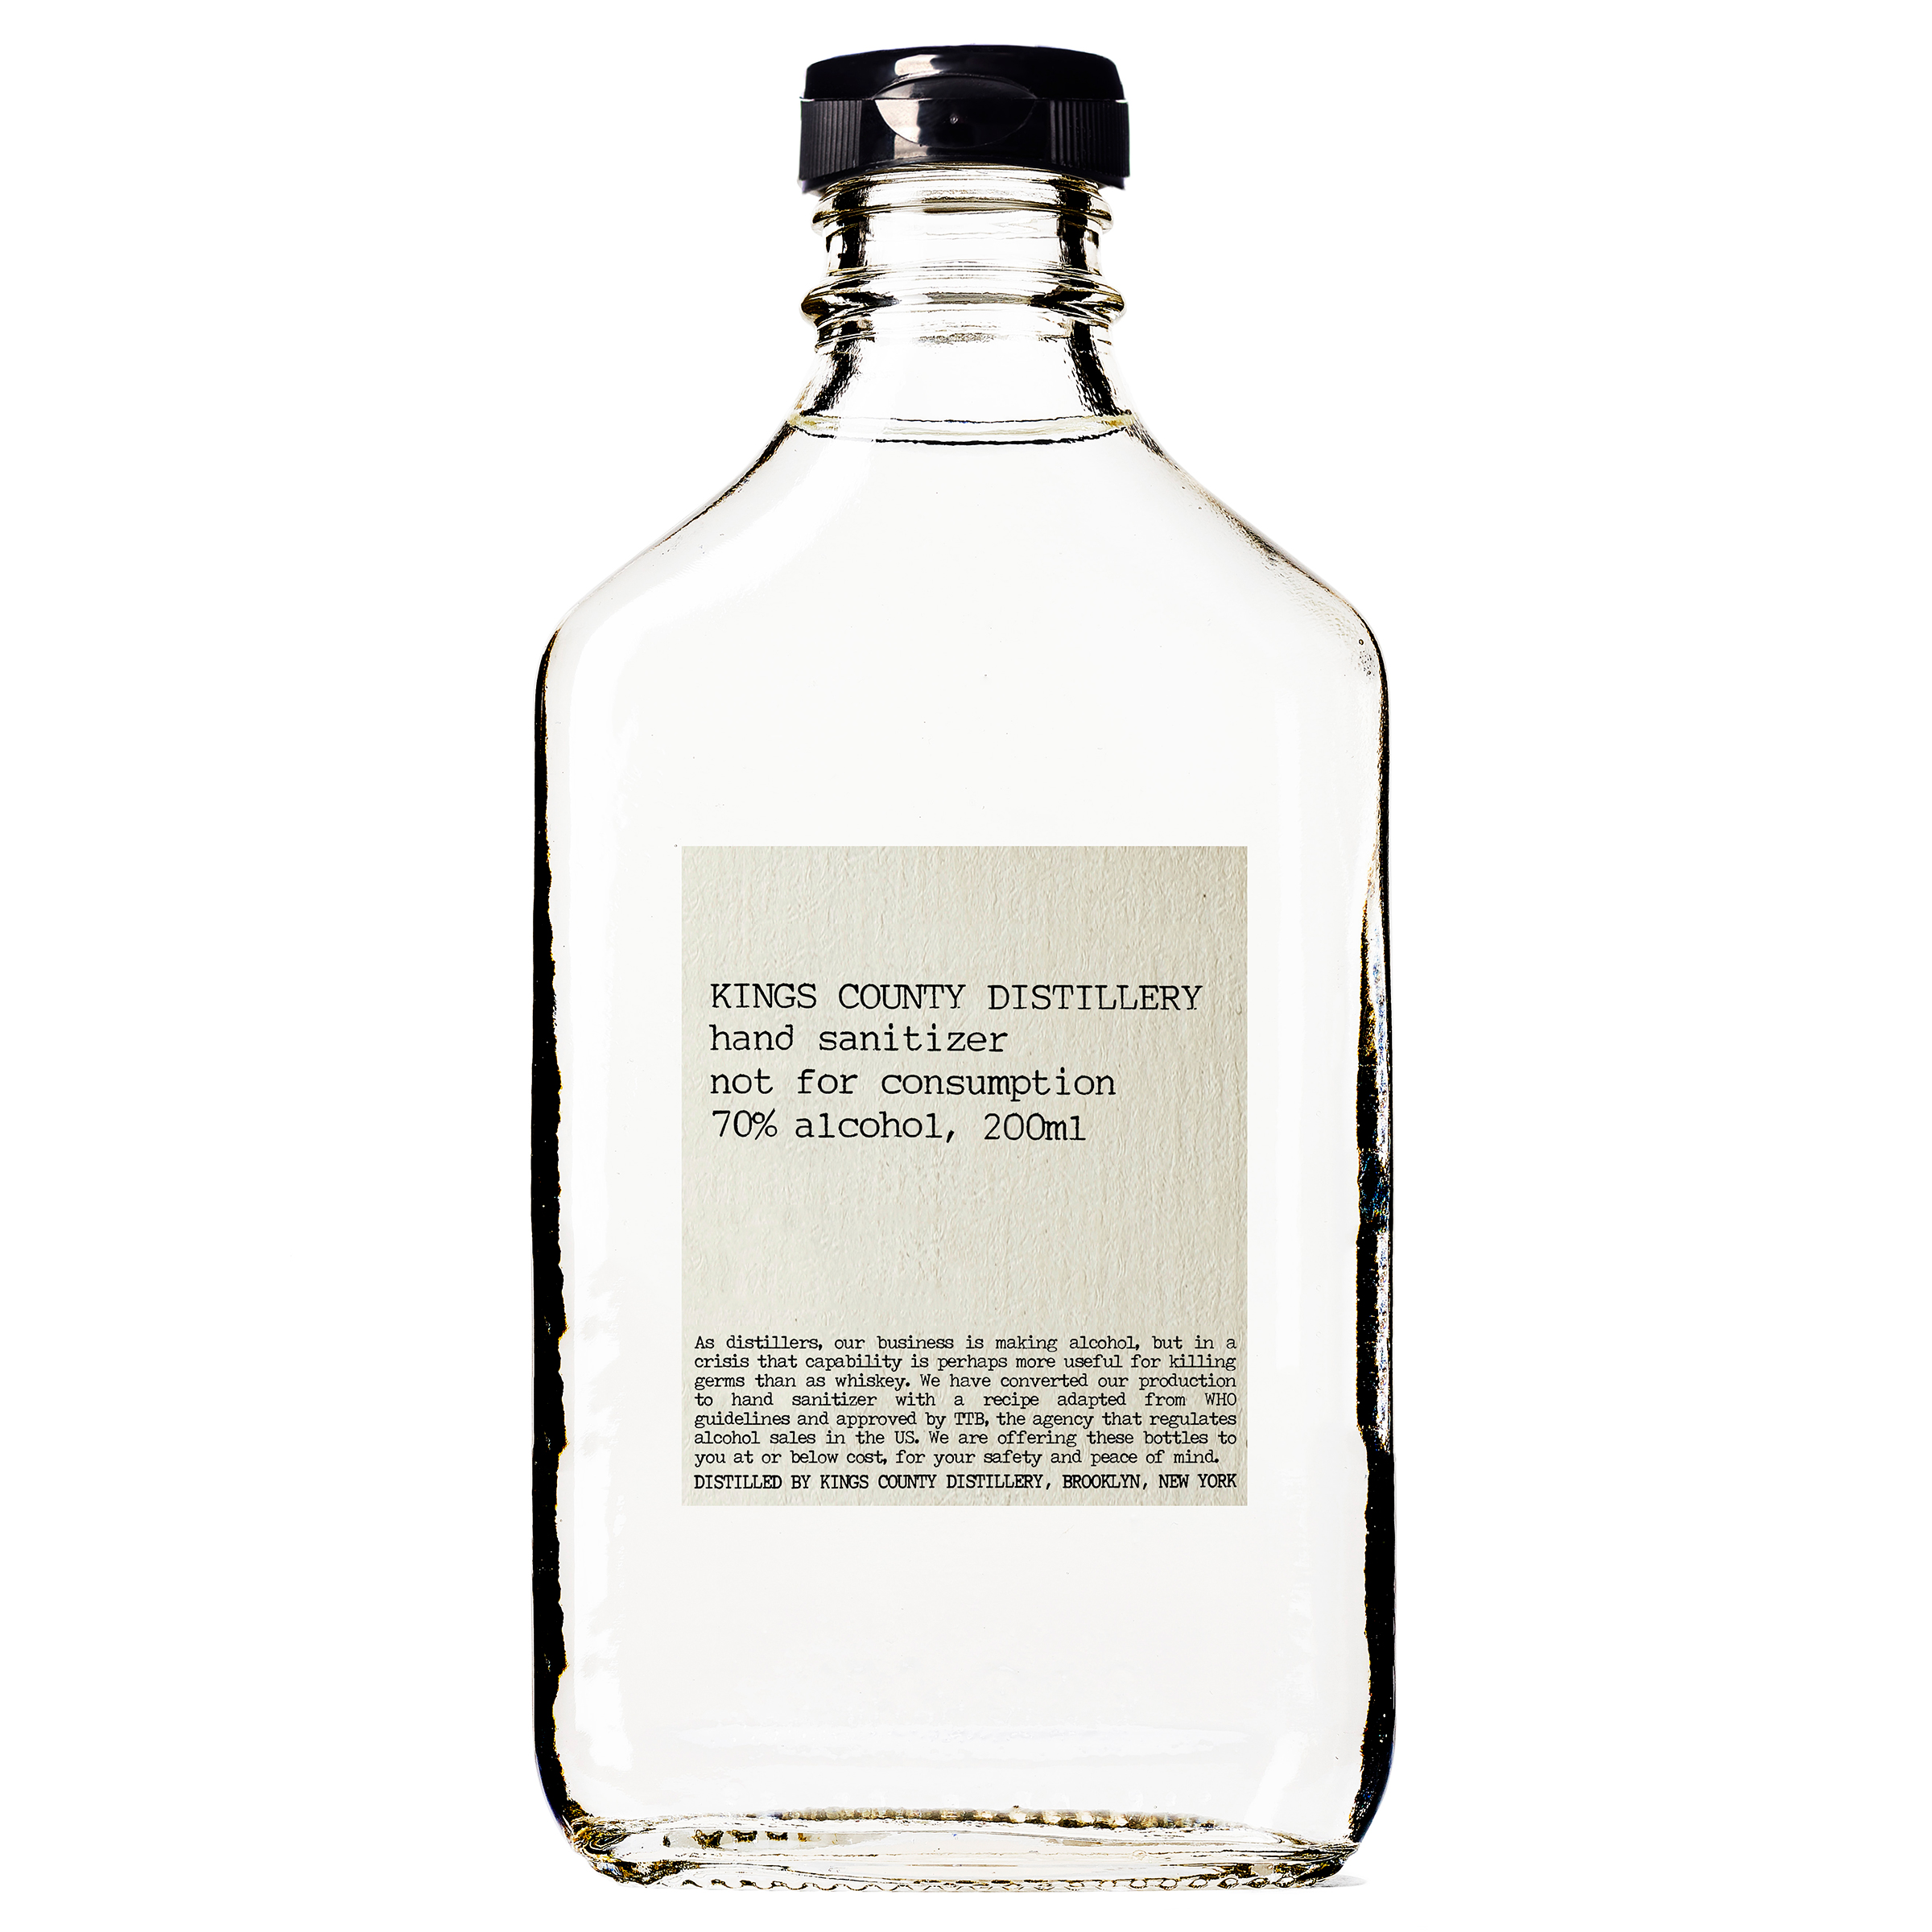 Hand sanitizer made by Kings County Distillery—which usually makes whiskey—in Brooklyn, N.Y. The New-York Historical Society has collected hand sanitizer made by distilleries that converted their operations.